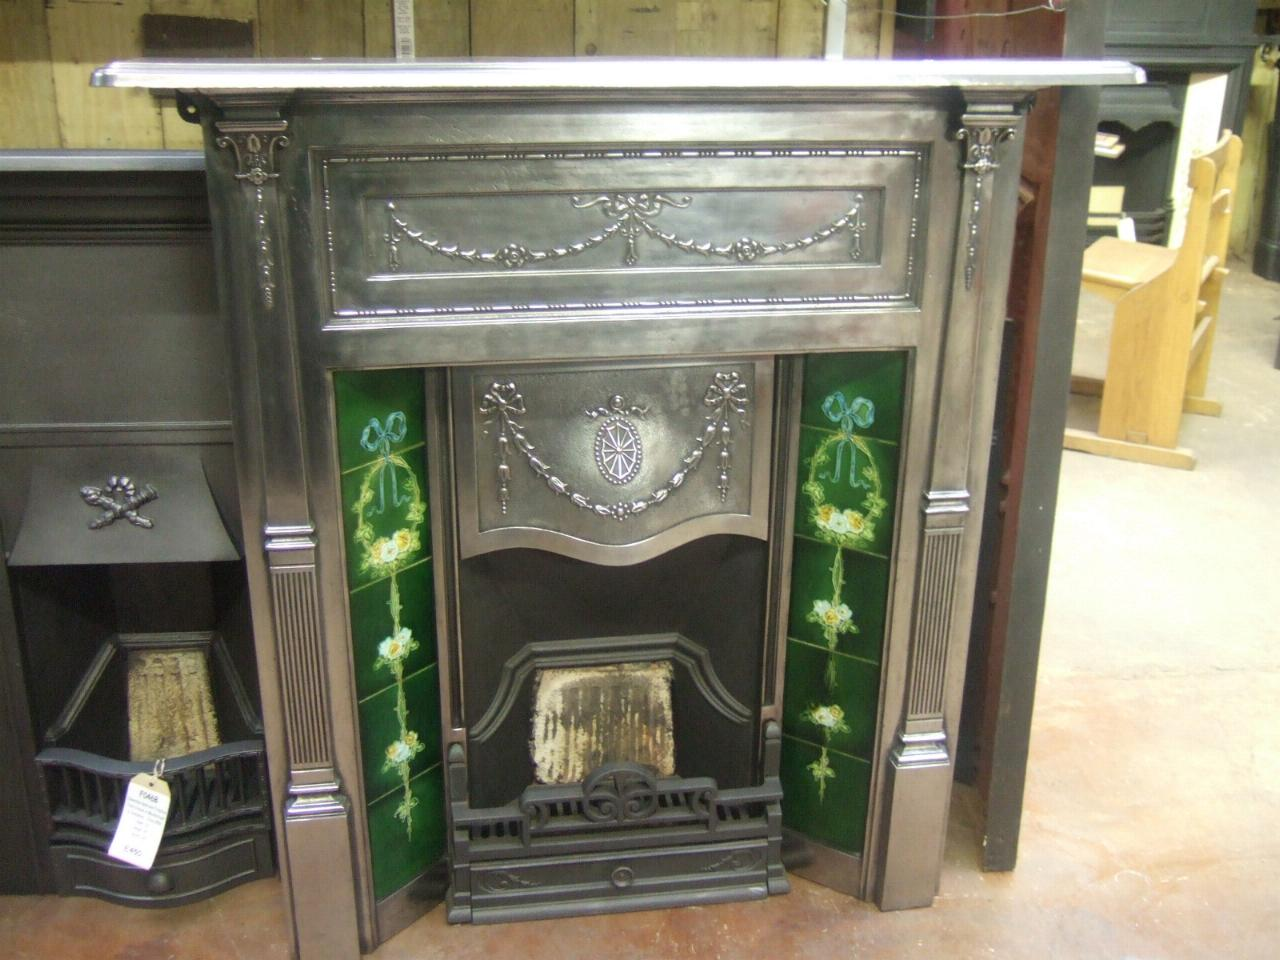 132TC - Fully-Polished Cast Iron Edwardian Tiled Fireplace - Fully-Polished Cast Iron Edwardian Tiled Fireplace - 132TC - Old